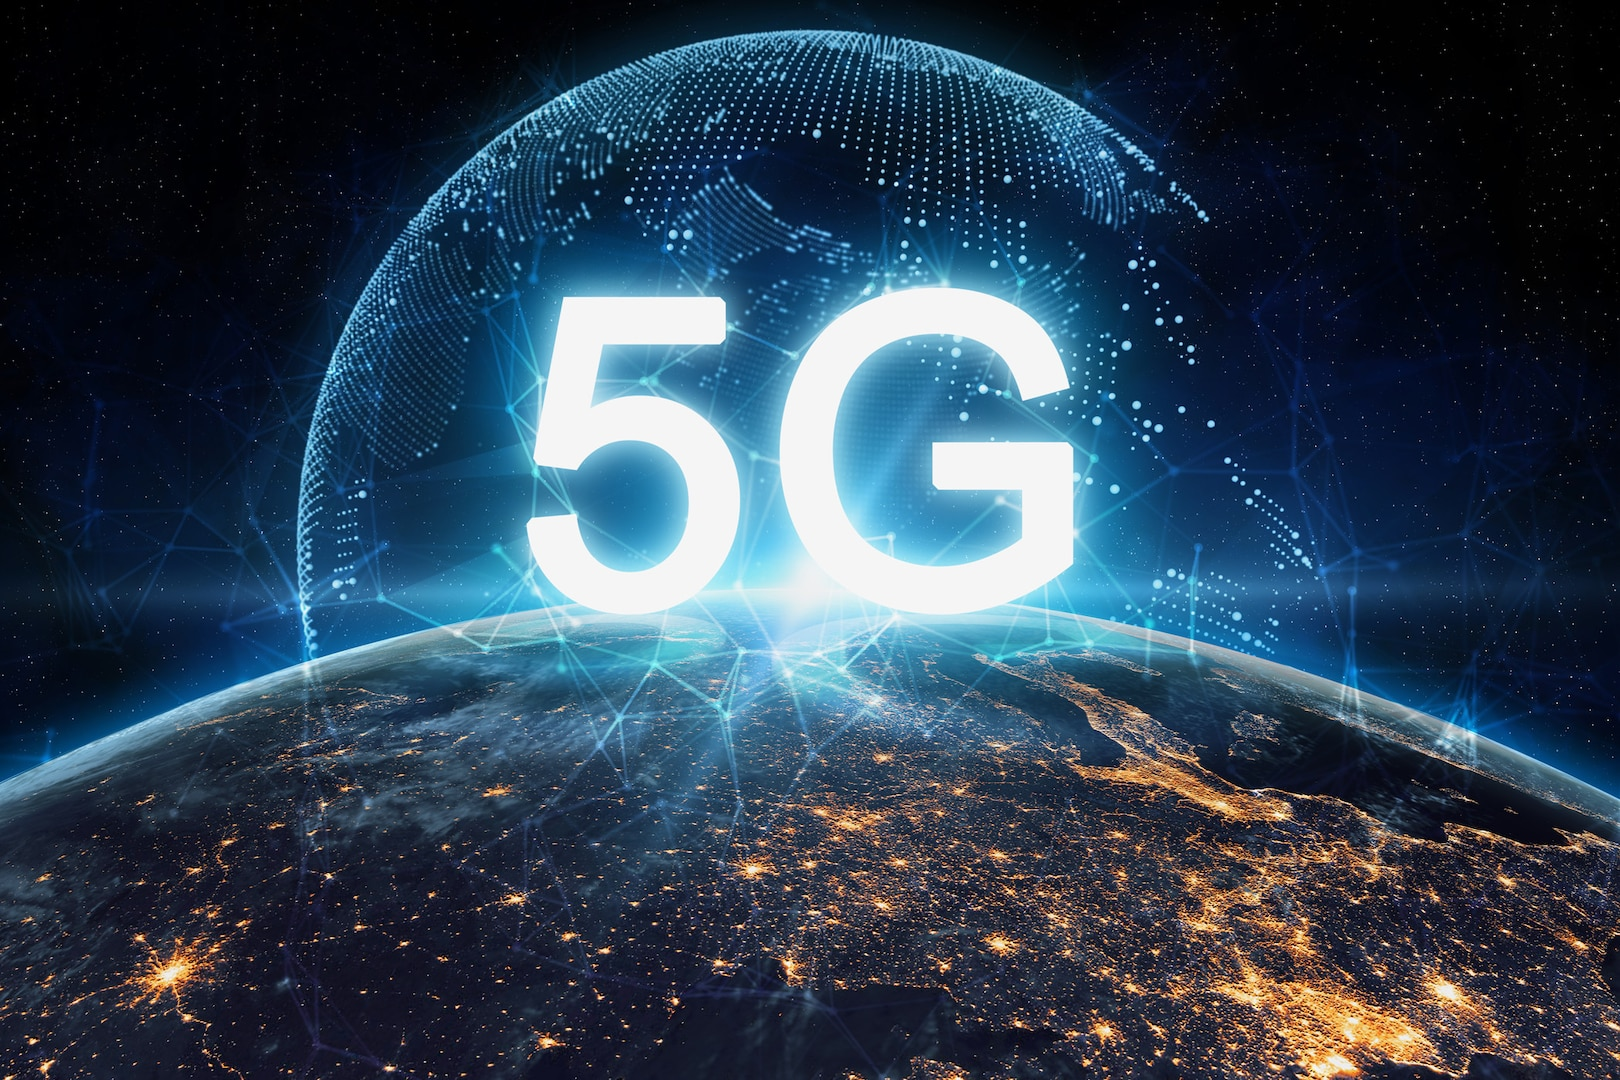 The Department of Defense has named seven U.S. military installations as the latest sites where it will conduct fifth-generation (5G) communications technology experimentation and testing.